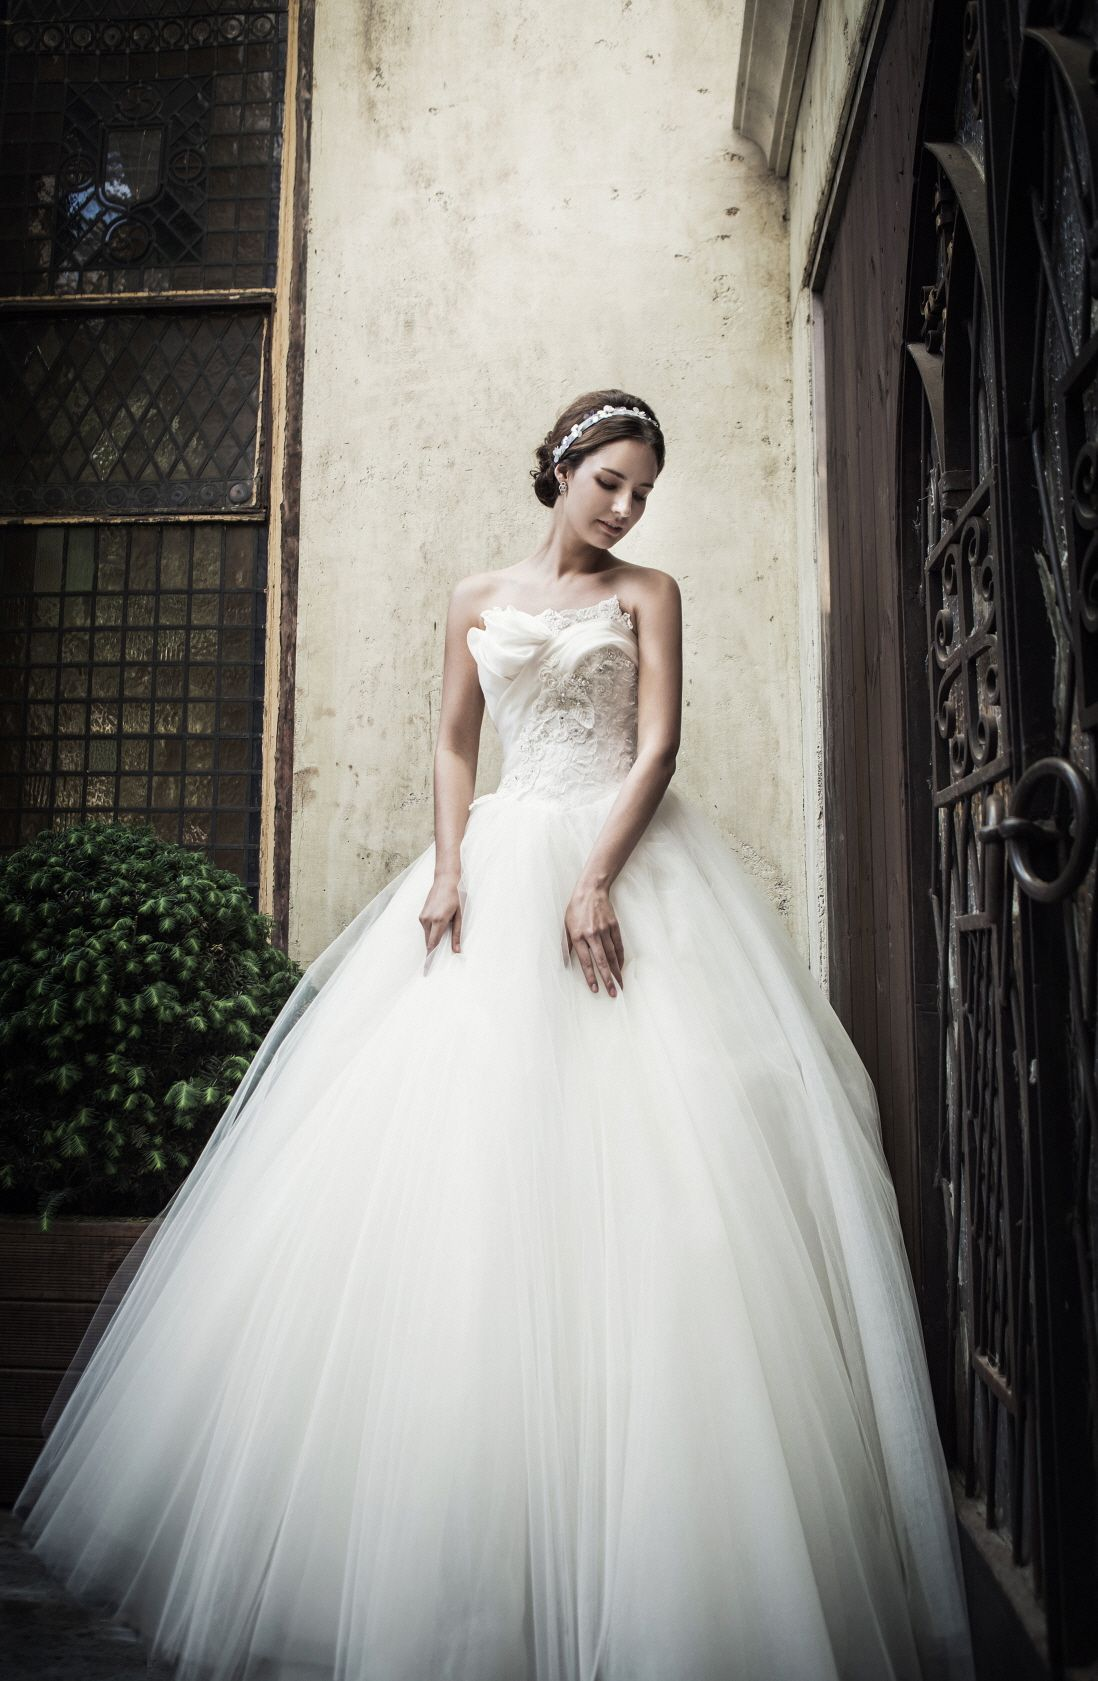 e3849a1f317c Bell line wedding dress. Bodice with lace details with sliver beads  embroidery. Tulle skirt give the romantic dress look. www.sonyunhui.com  #손윤희드레스 ...